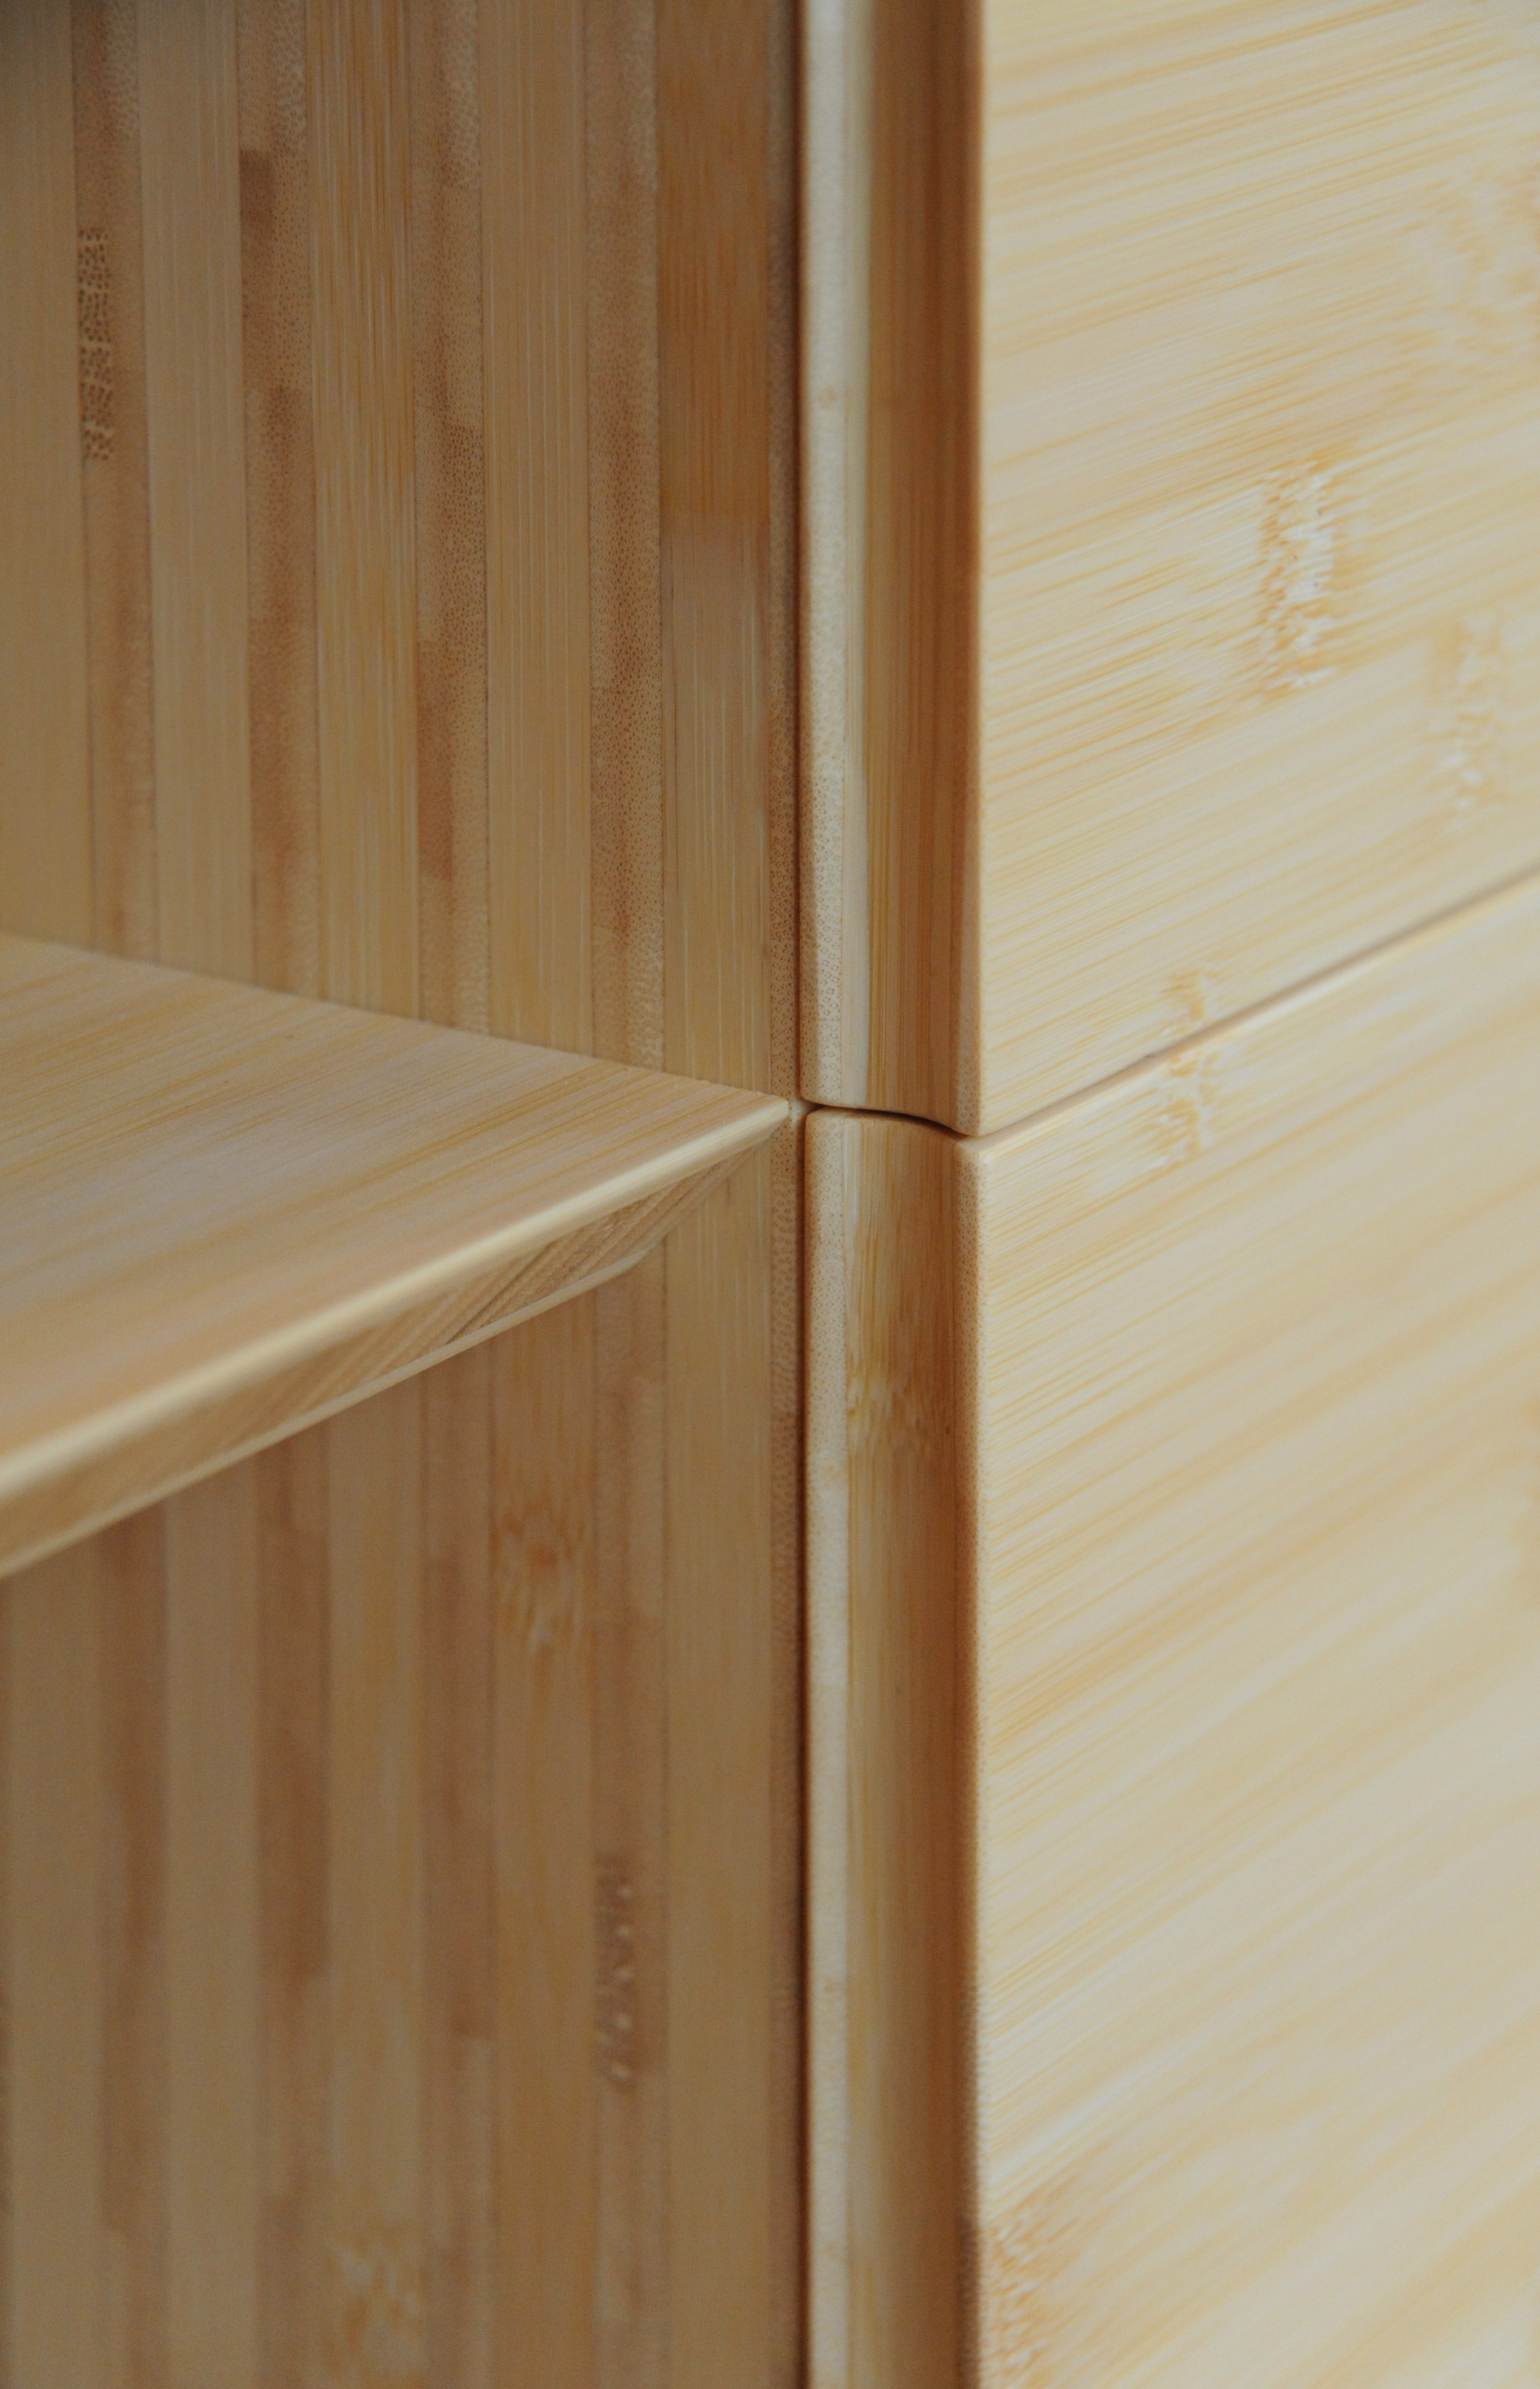 BUTZ + KLUG Architecture, custom furniture, credenza, bamboo, detail